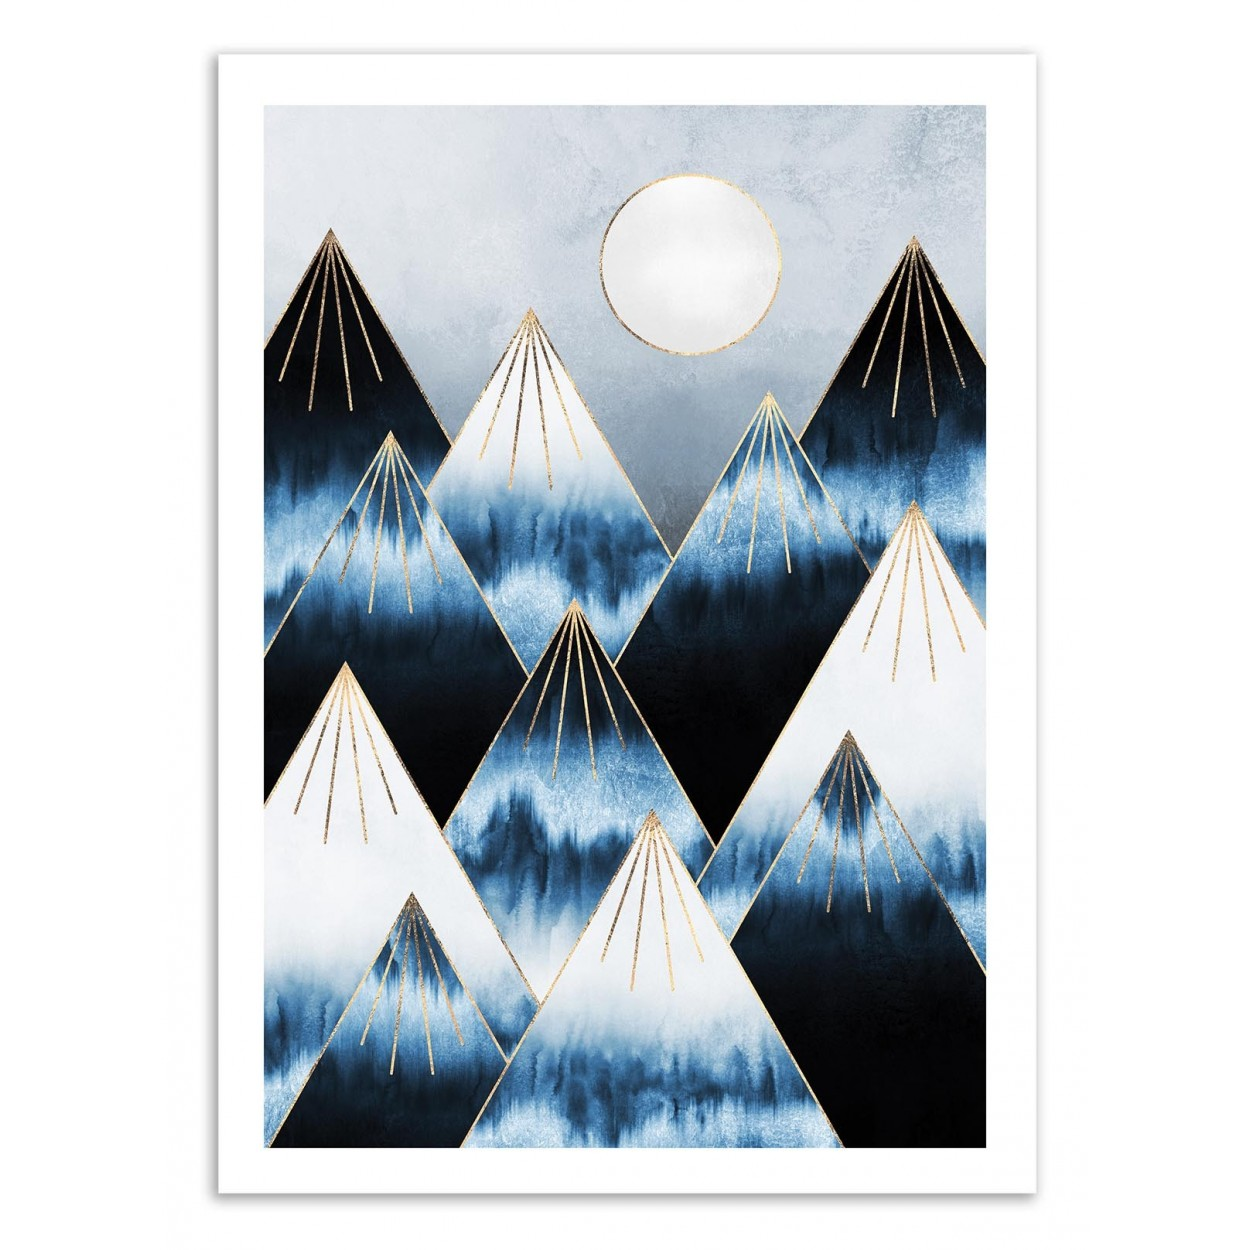 affiche d 39 art tableau poster design illustration de montagnes neige. Black Bedroom Furniture Sets. Home Design Ideas